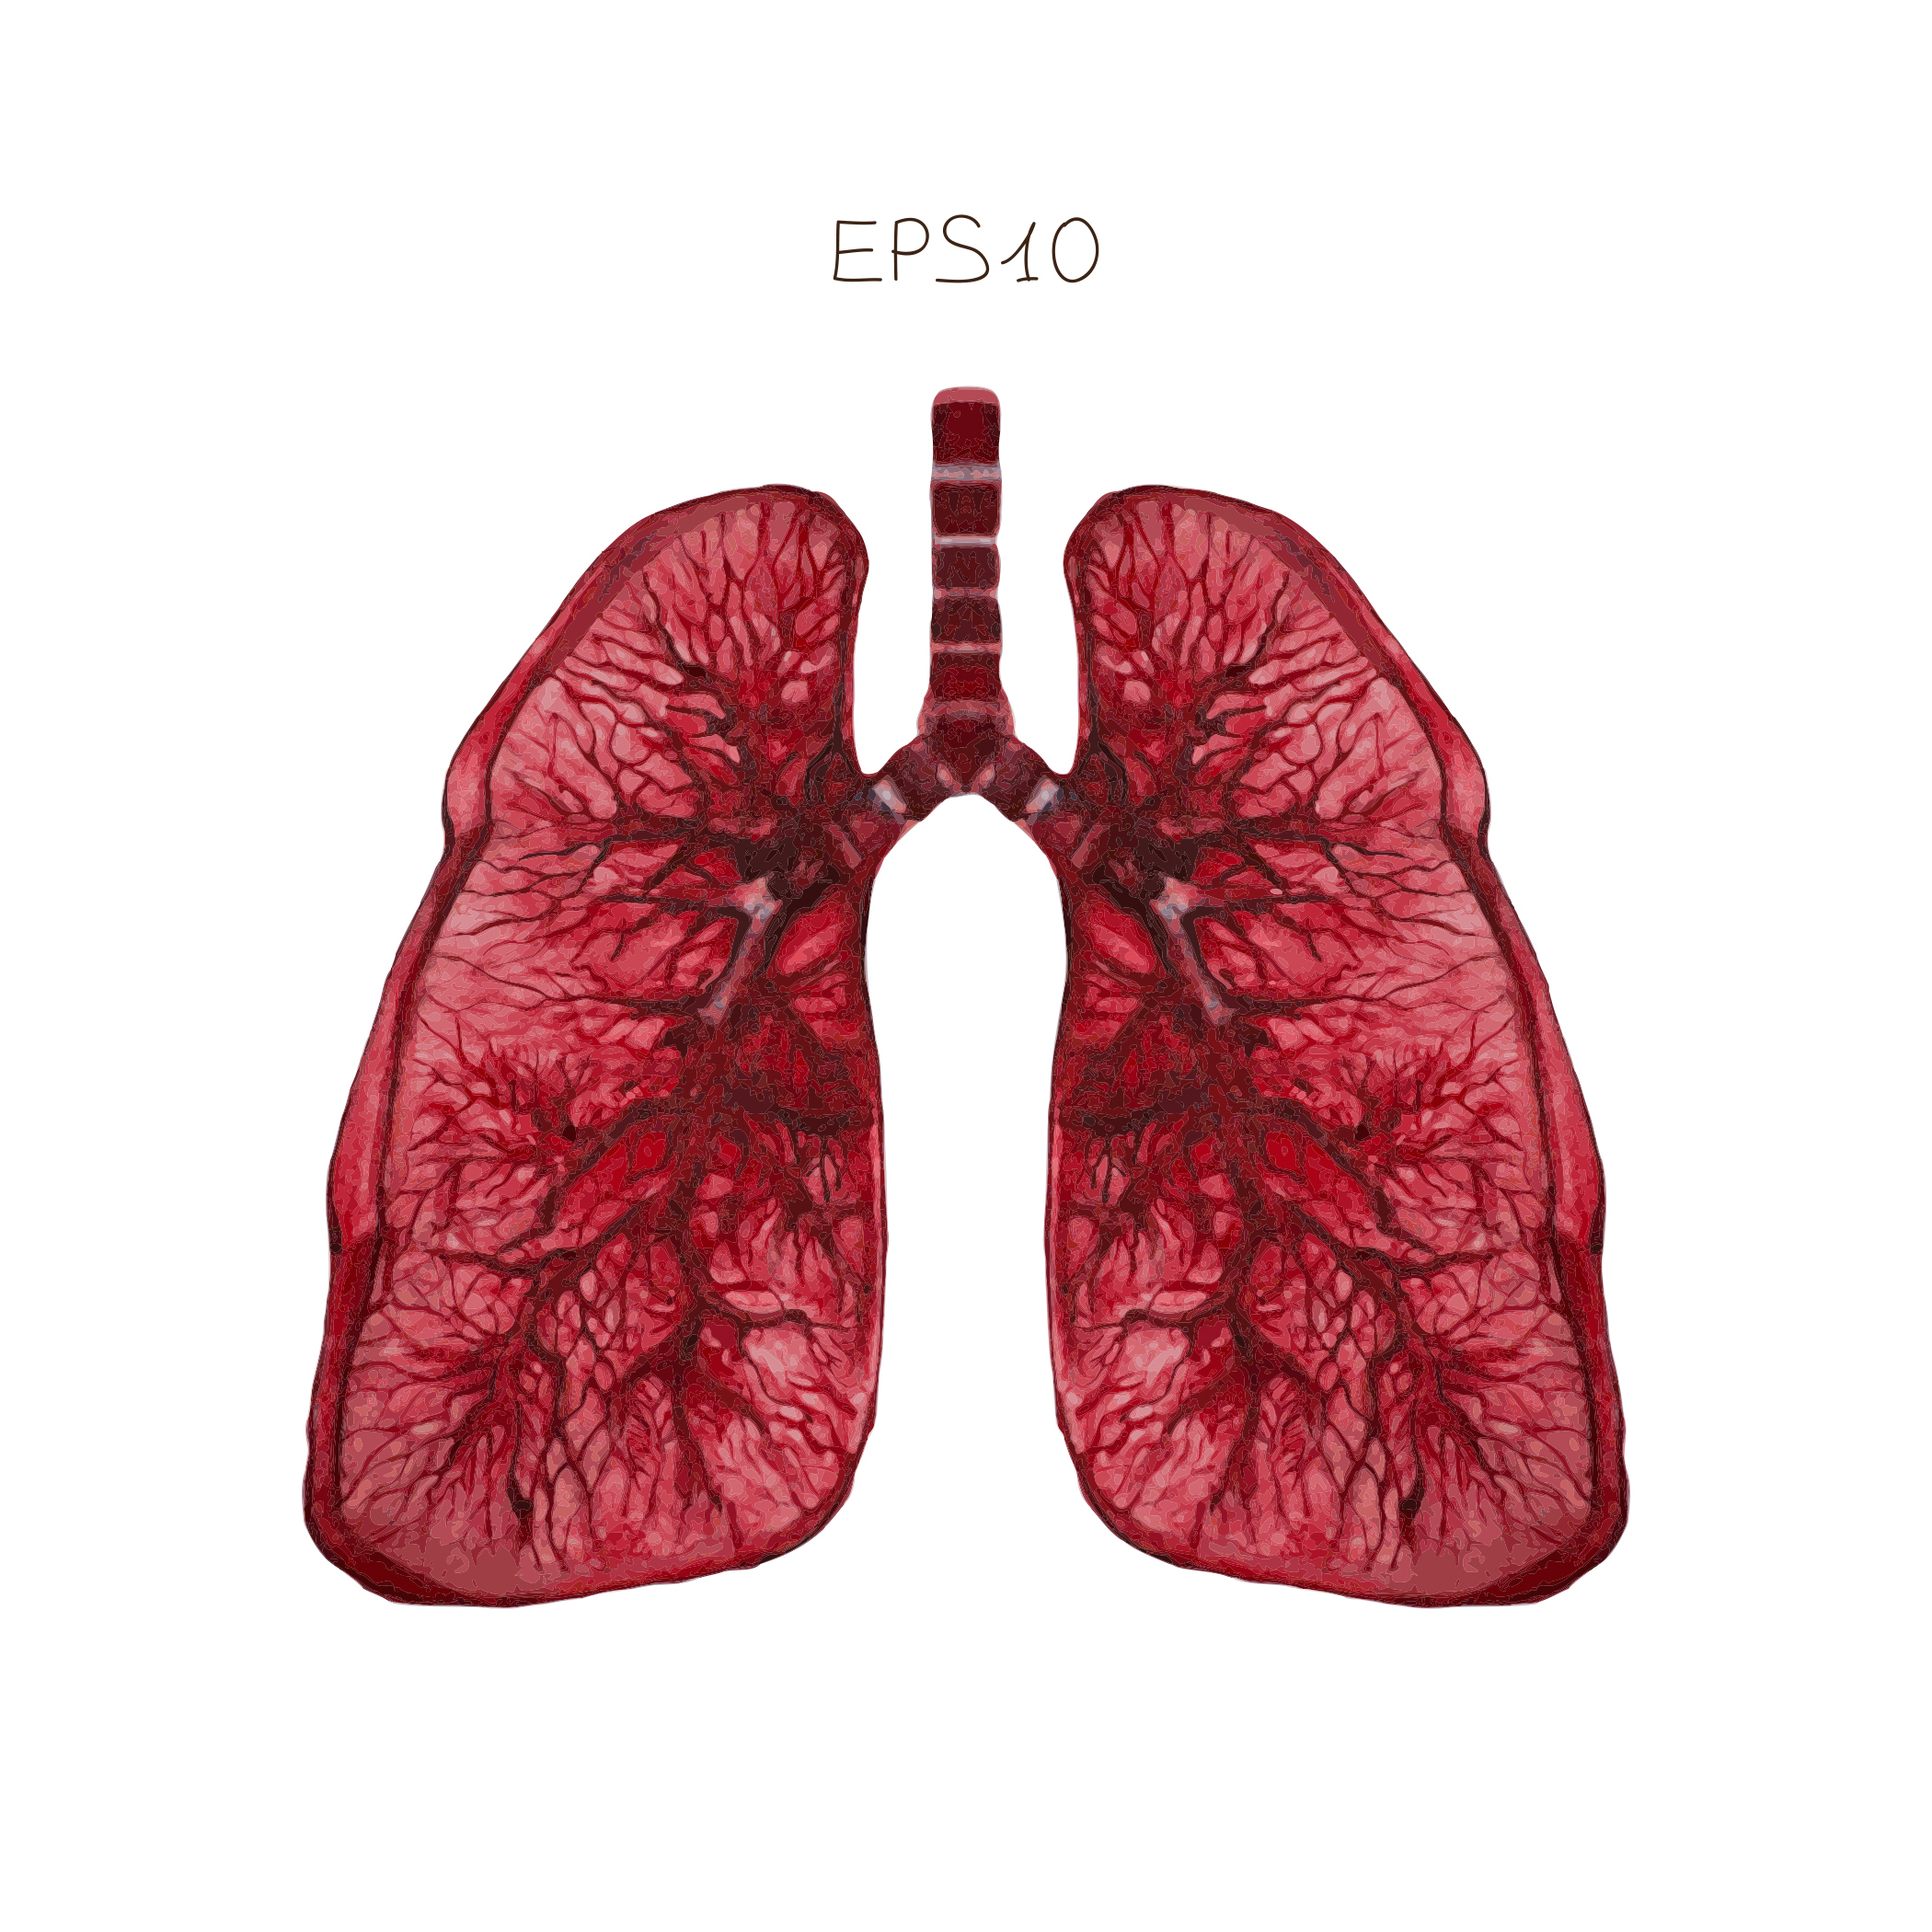 Researchers Discover KLF4 is a Crucial Factor in Pulmonary Hypertension